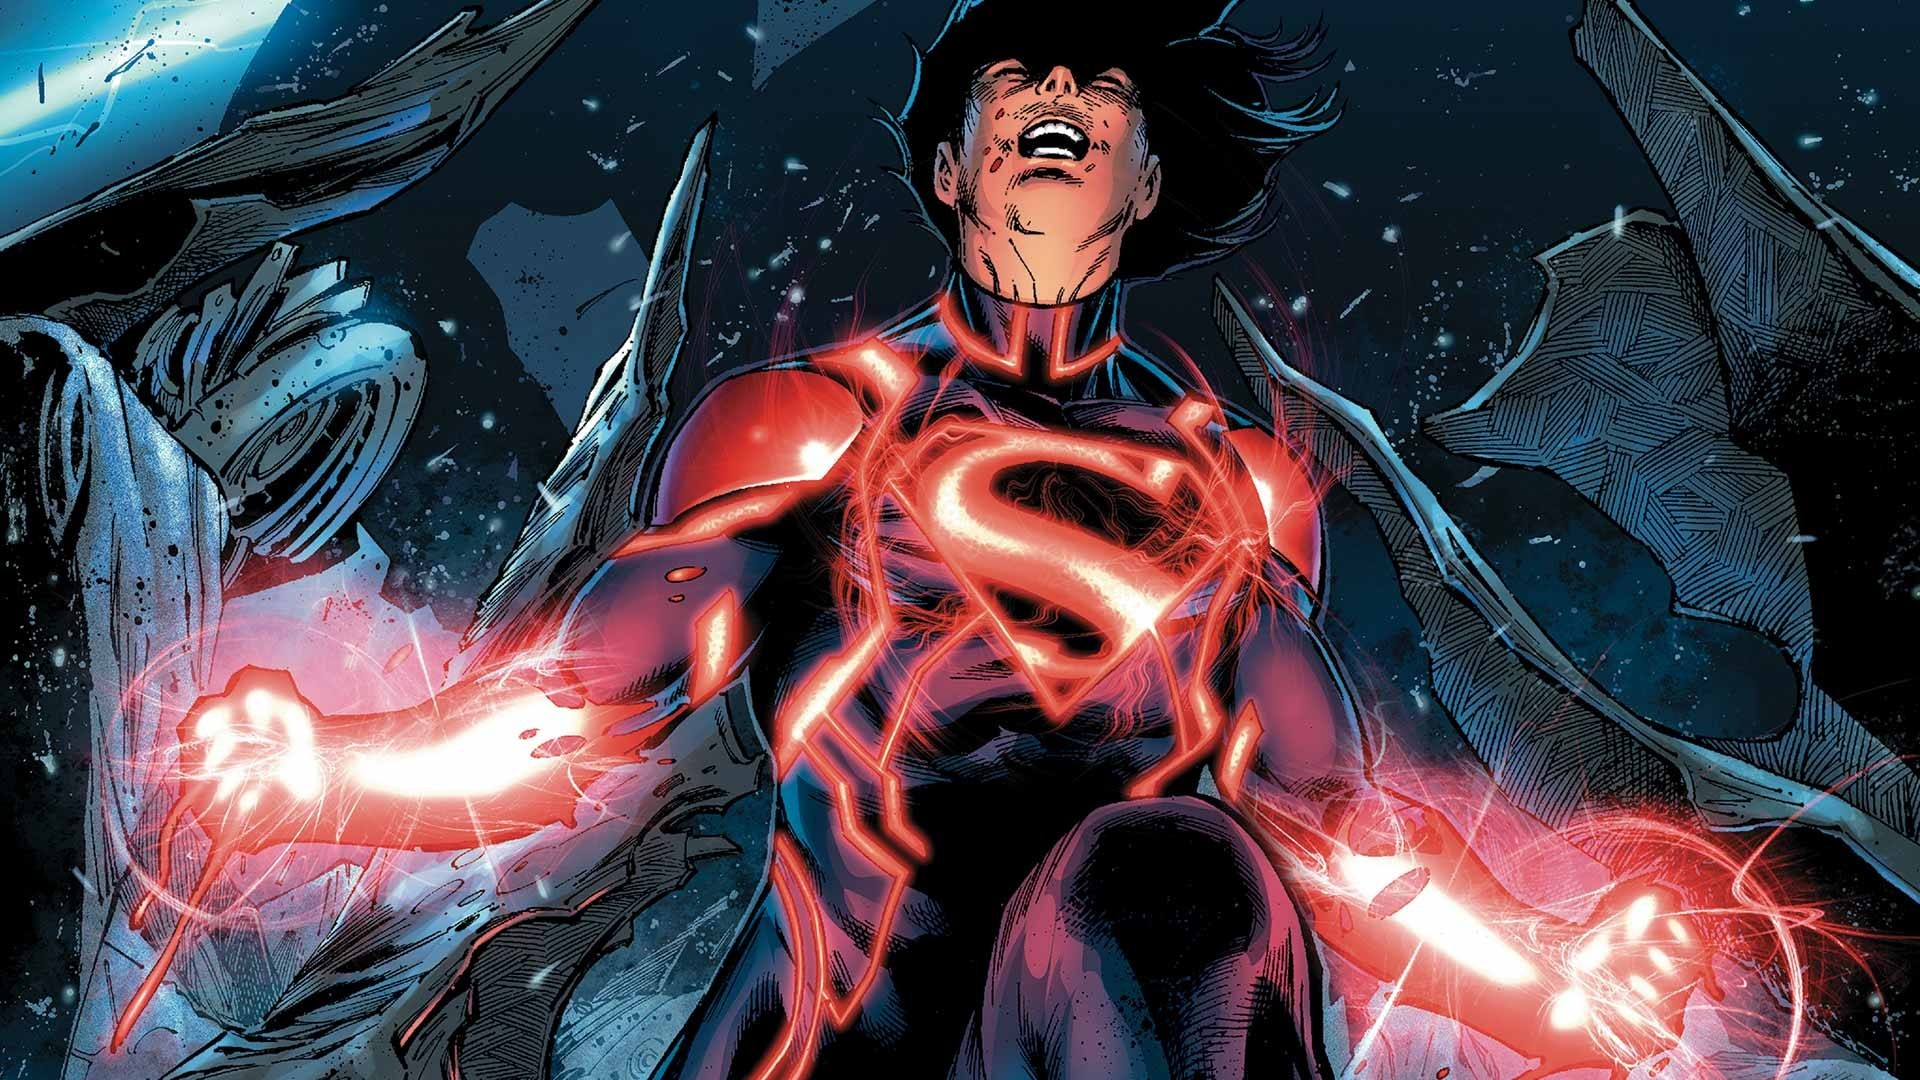 Res: 1920x1080, Superboy Wallpapers